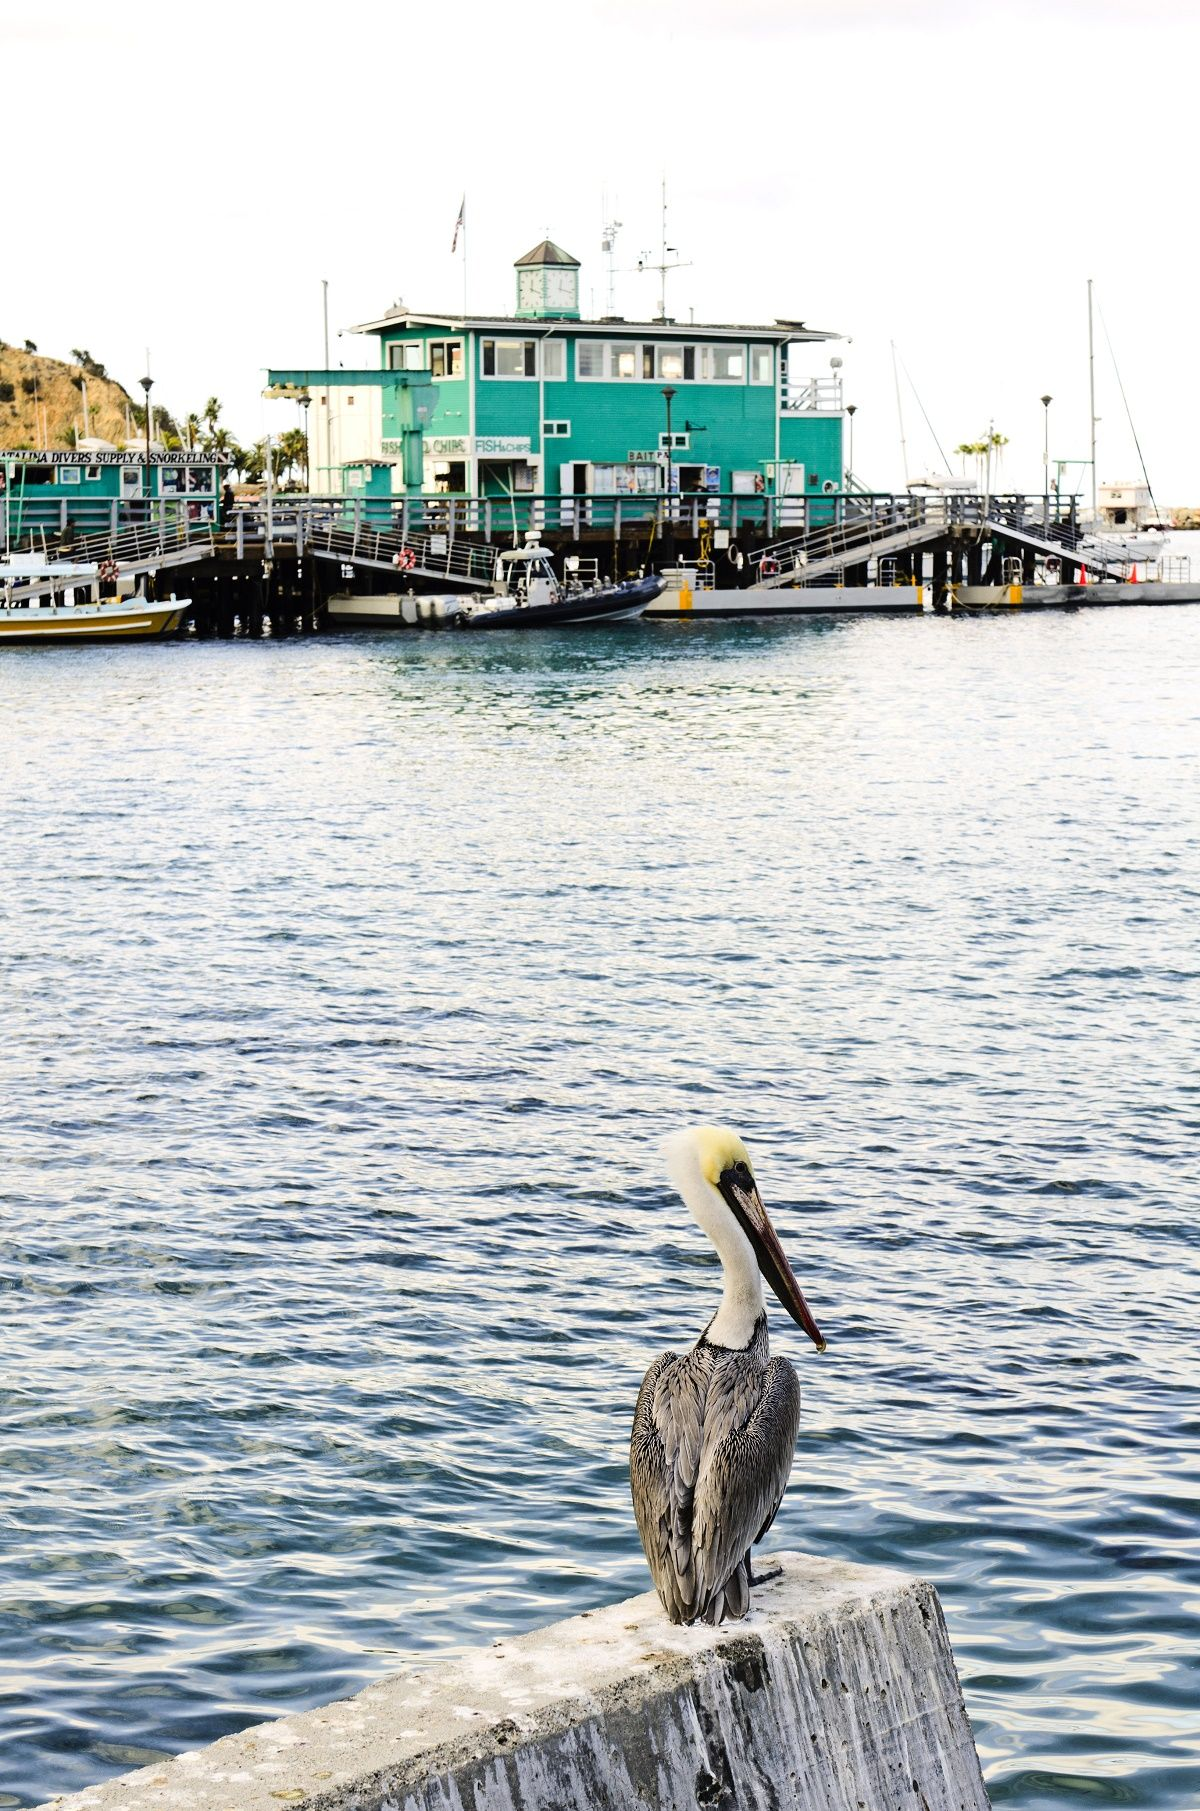 Travel to Southern California's Catalina Island by boat